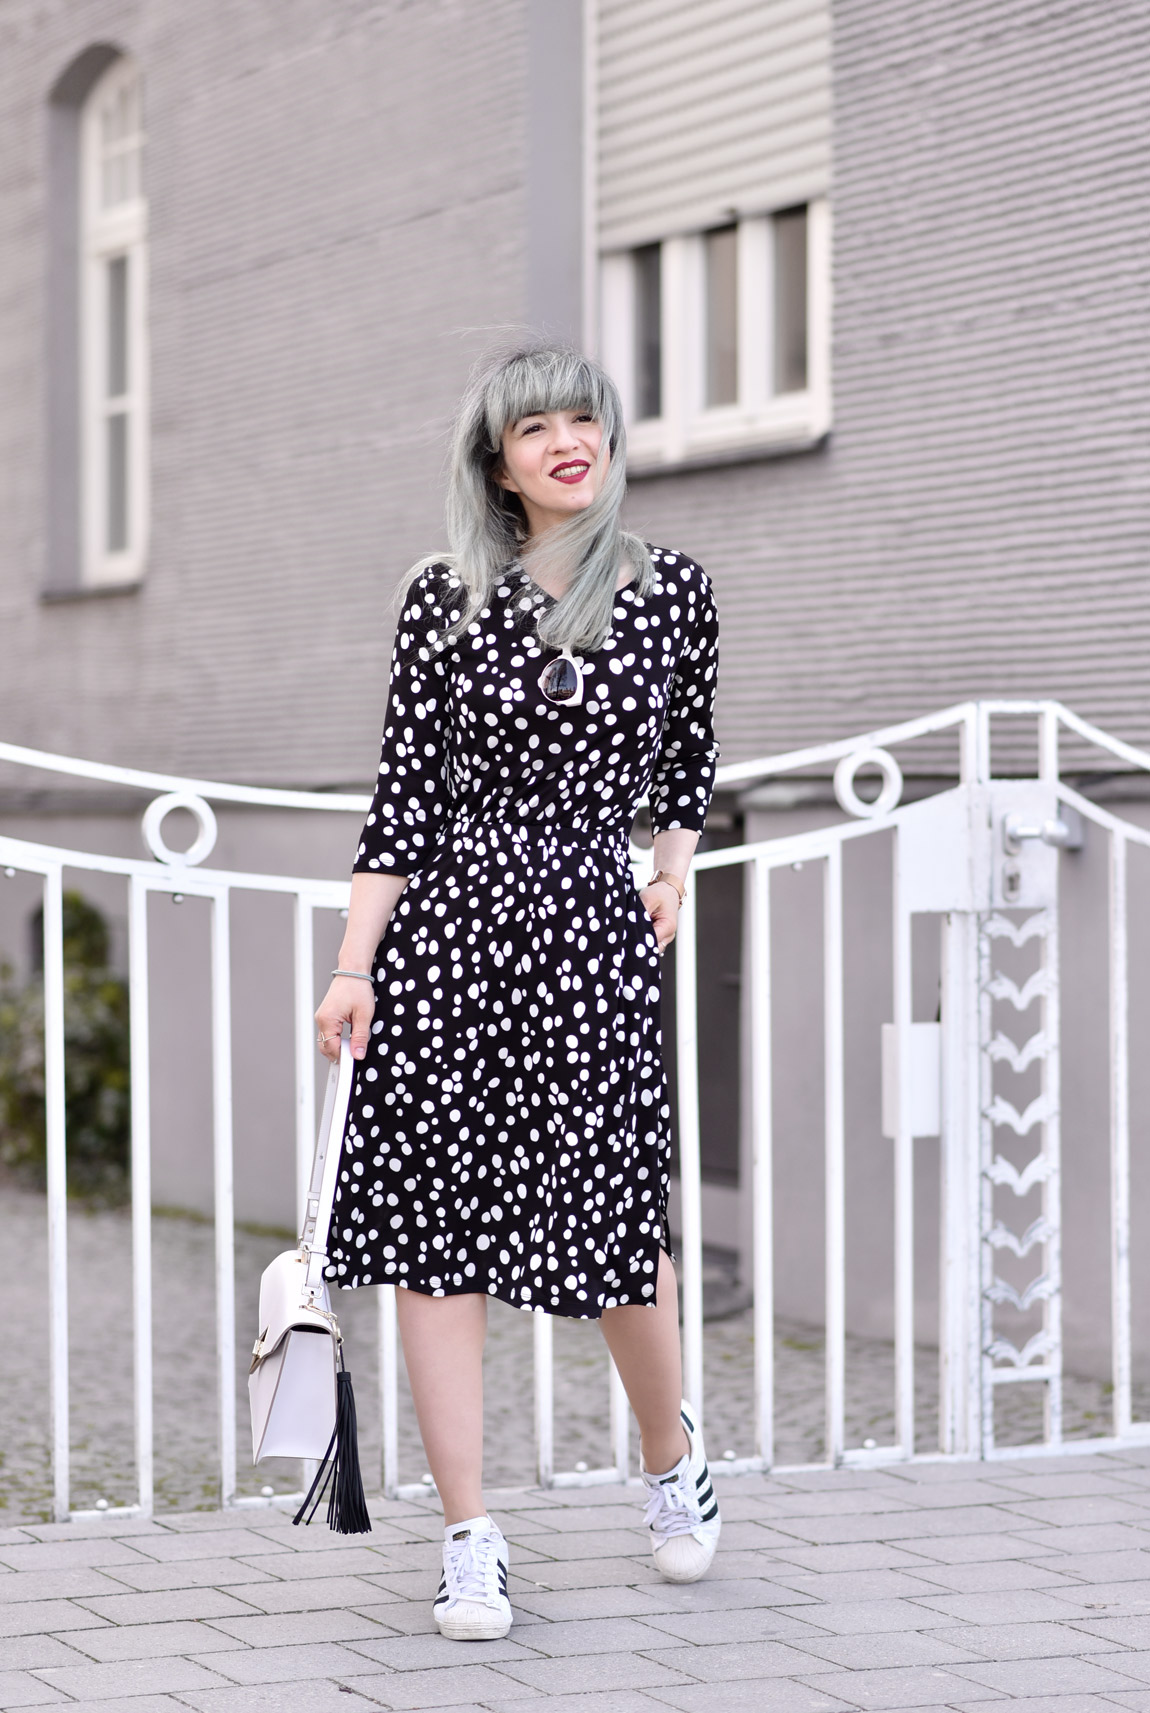 otherstories, kleid, dress, cute, feminine, chic, girl, fashionblogger, modeblogger, münchen, ootd, streetstyle, midi, adidas, frühling, inspiration